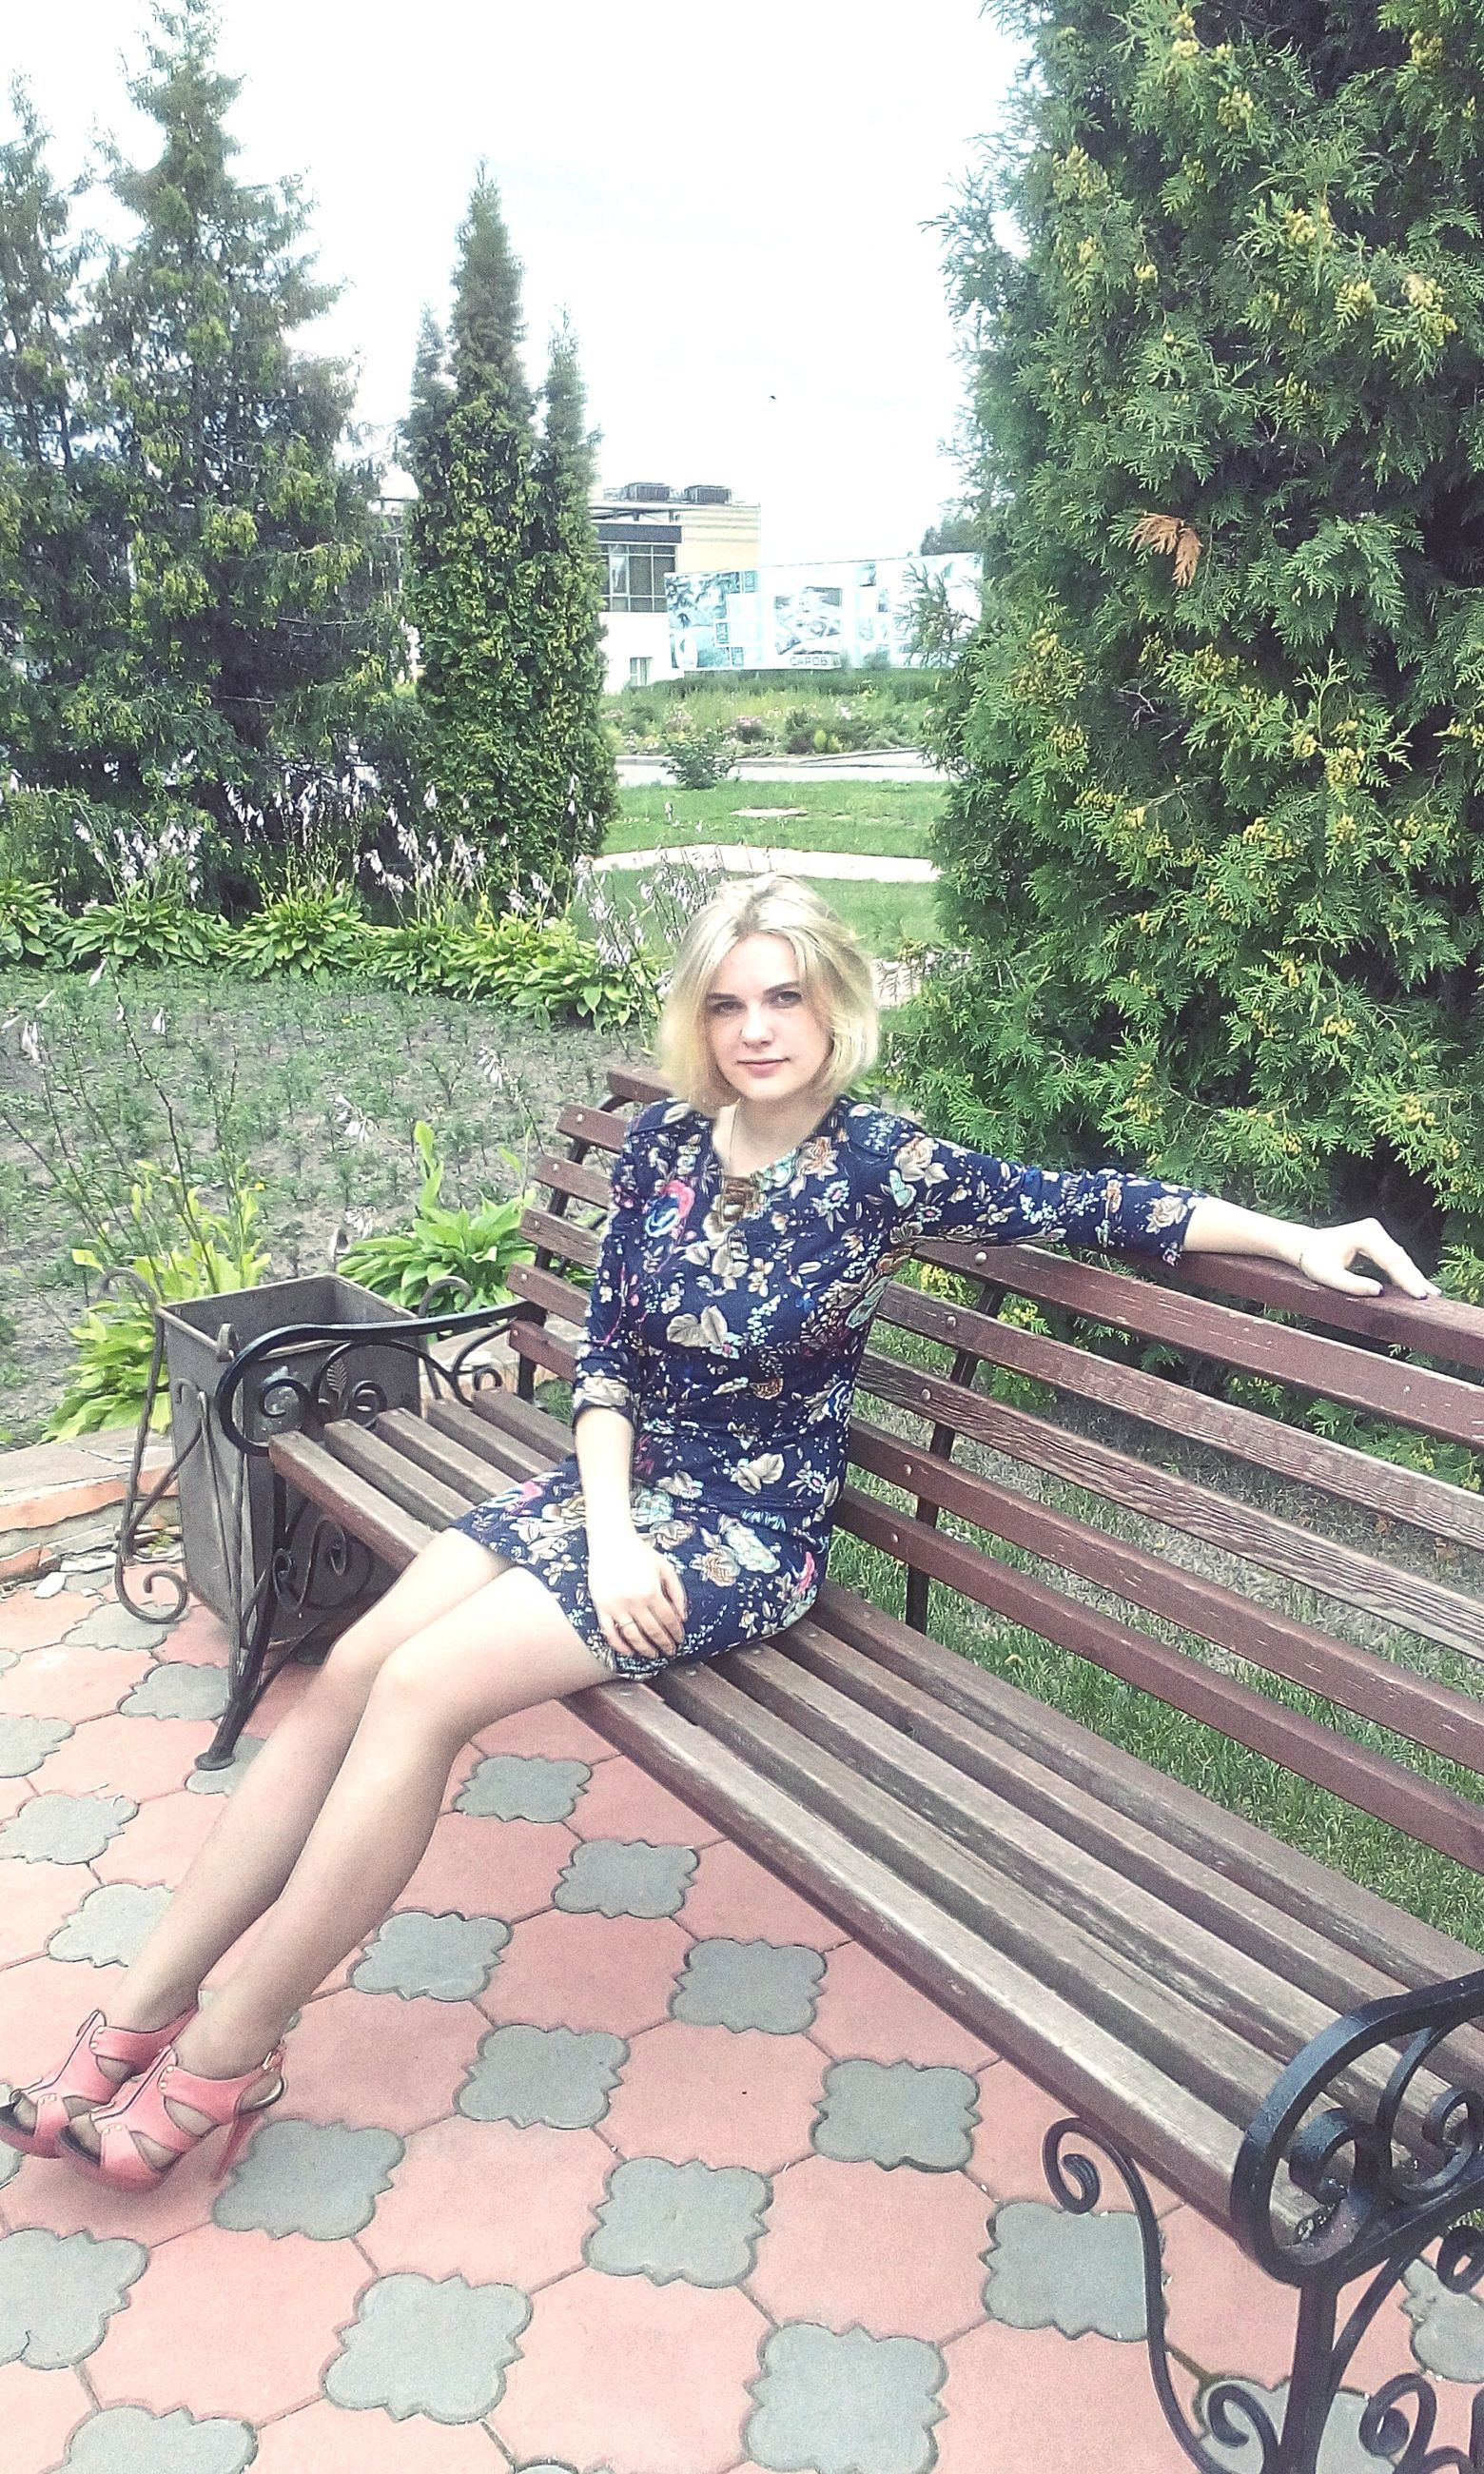 sitting, person, lifestyles, relaxation, casual clothing, leisure activity, full length, looking at camera, portrait, tree, childhood, young adult, park - man made space, young women, elementary age, smiling, bench, front view